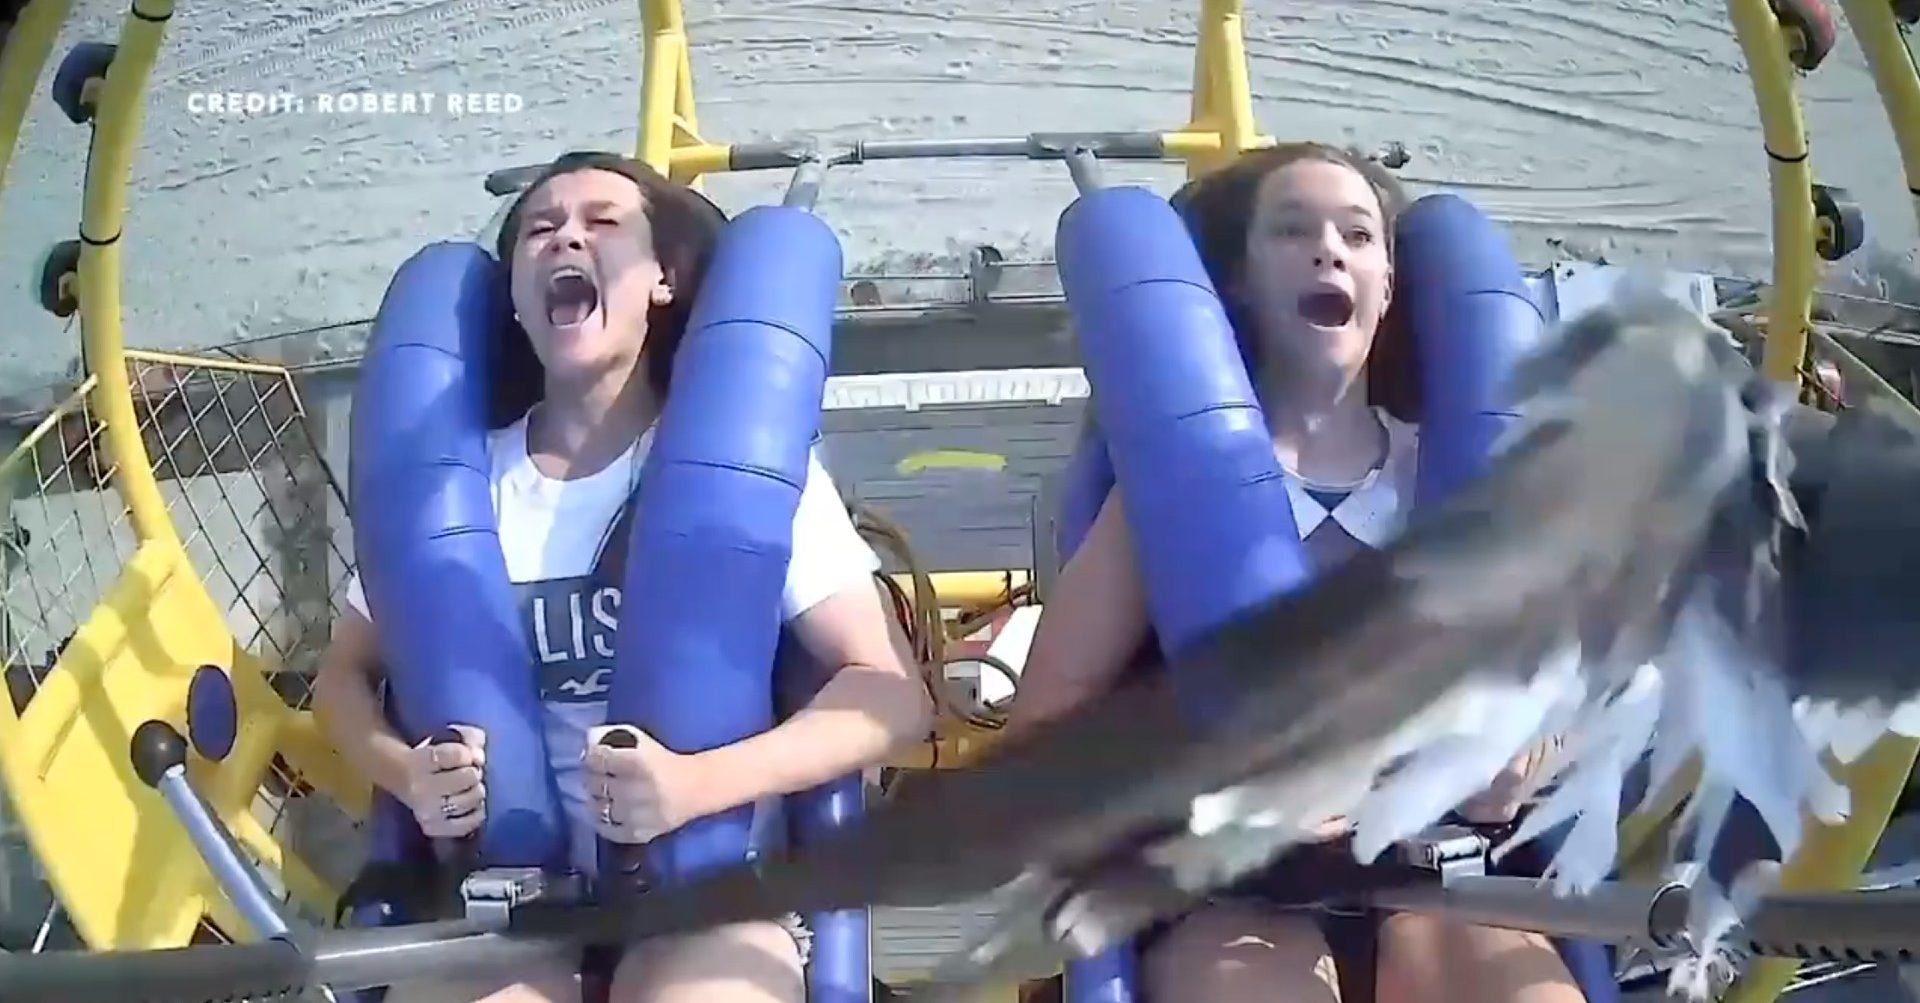 Seagull flies face first into girl on ride at New Jersey amusement park. (Screenshot/Twitter/Public — User: @barstoolsports)